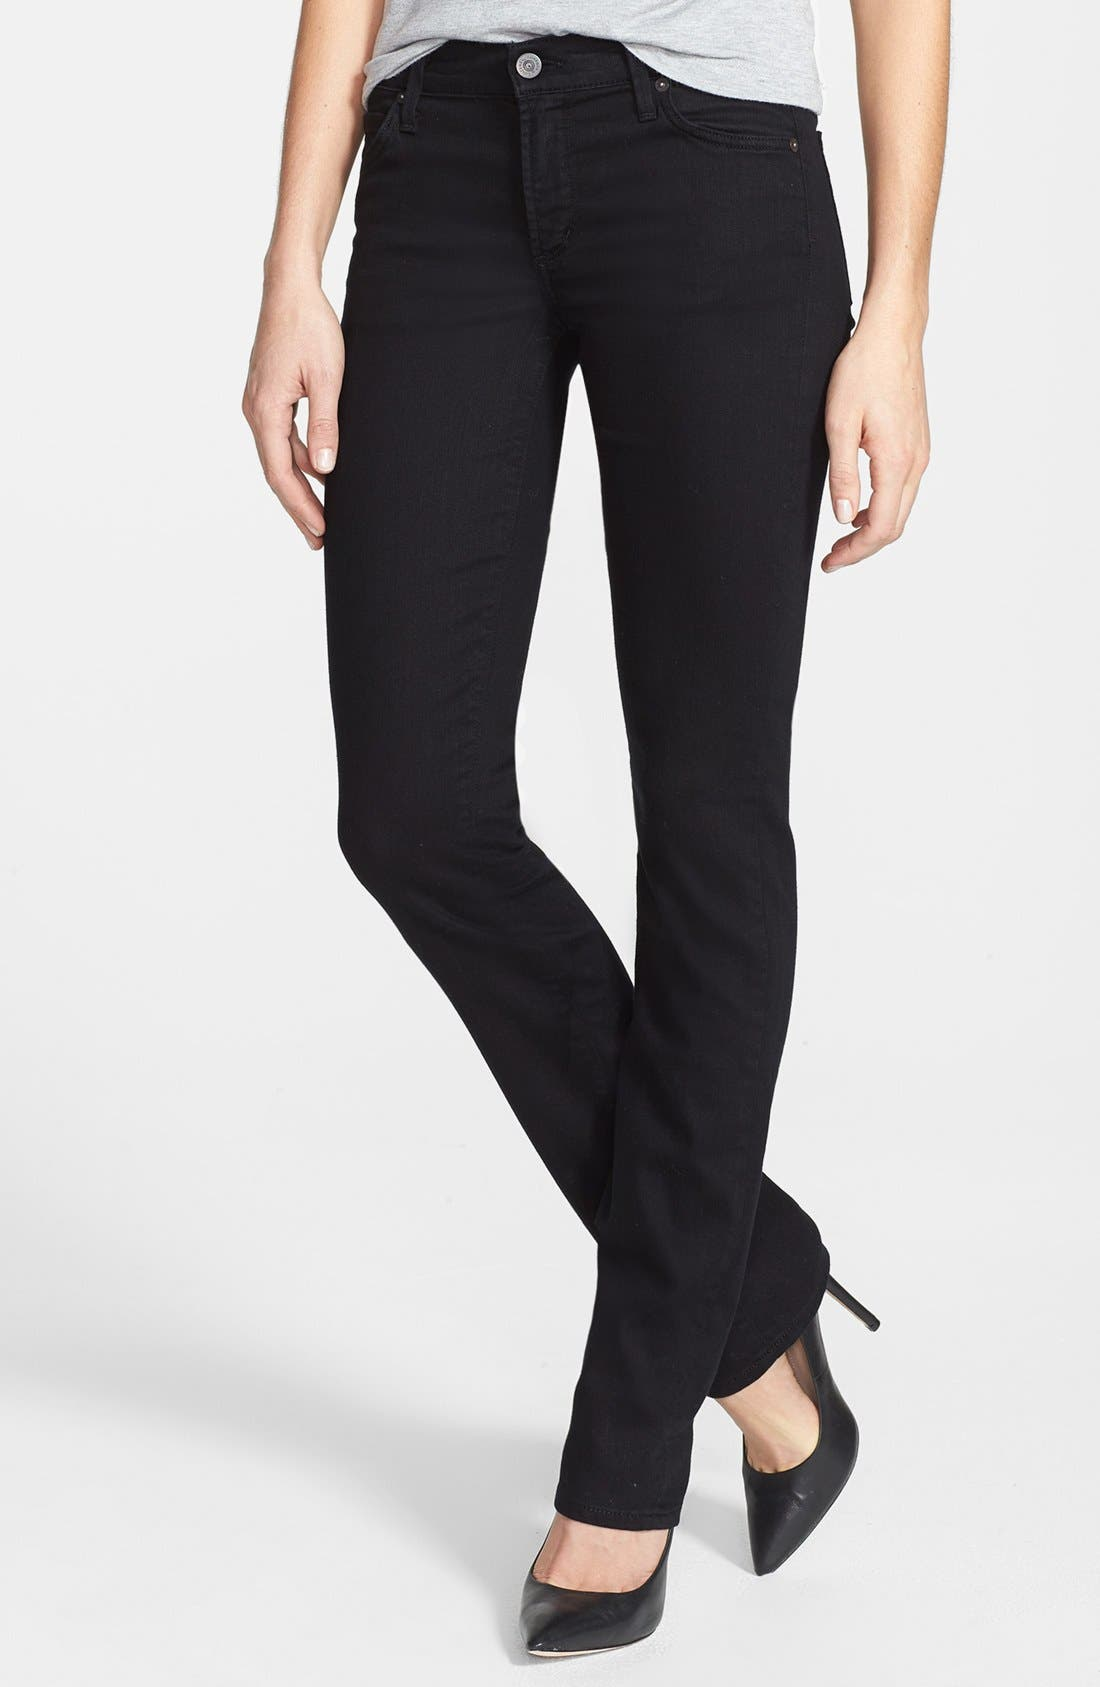 Main Image - Citizens of Humanity 'Ava' Straight Leg Jeans (Black Diamond)